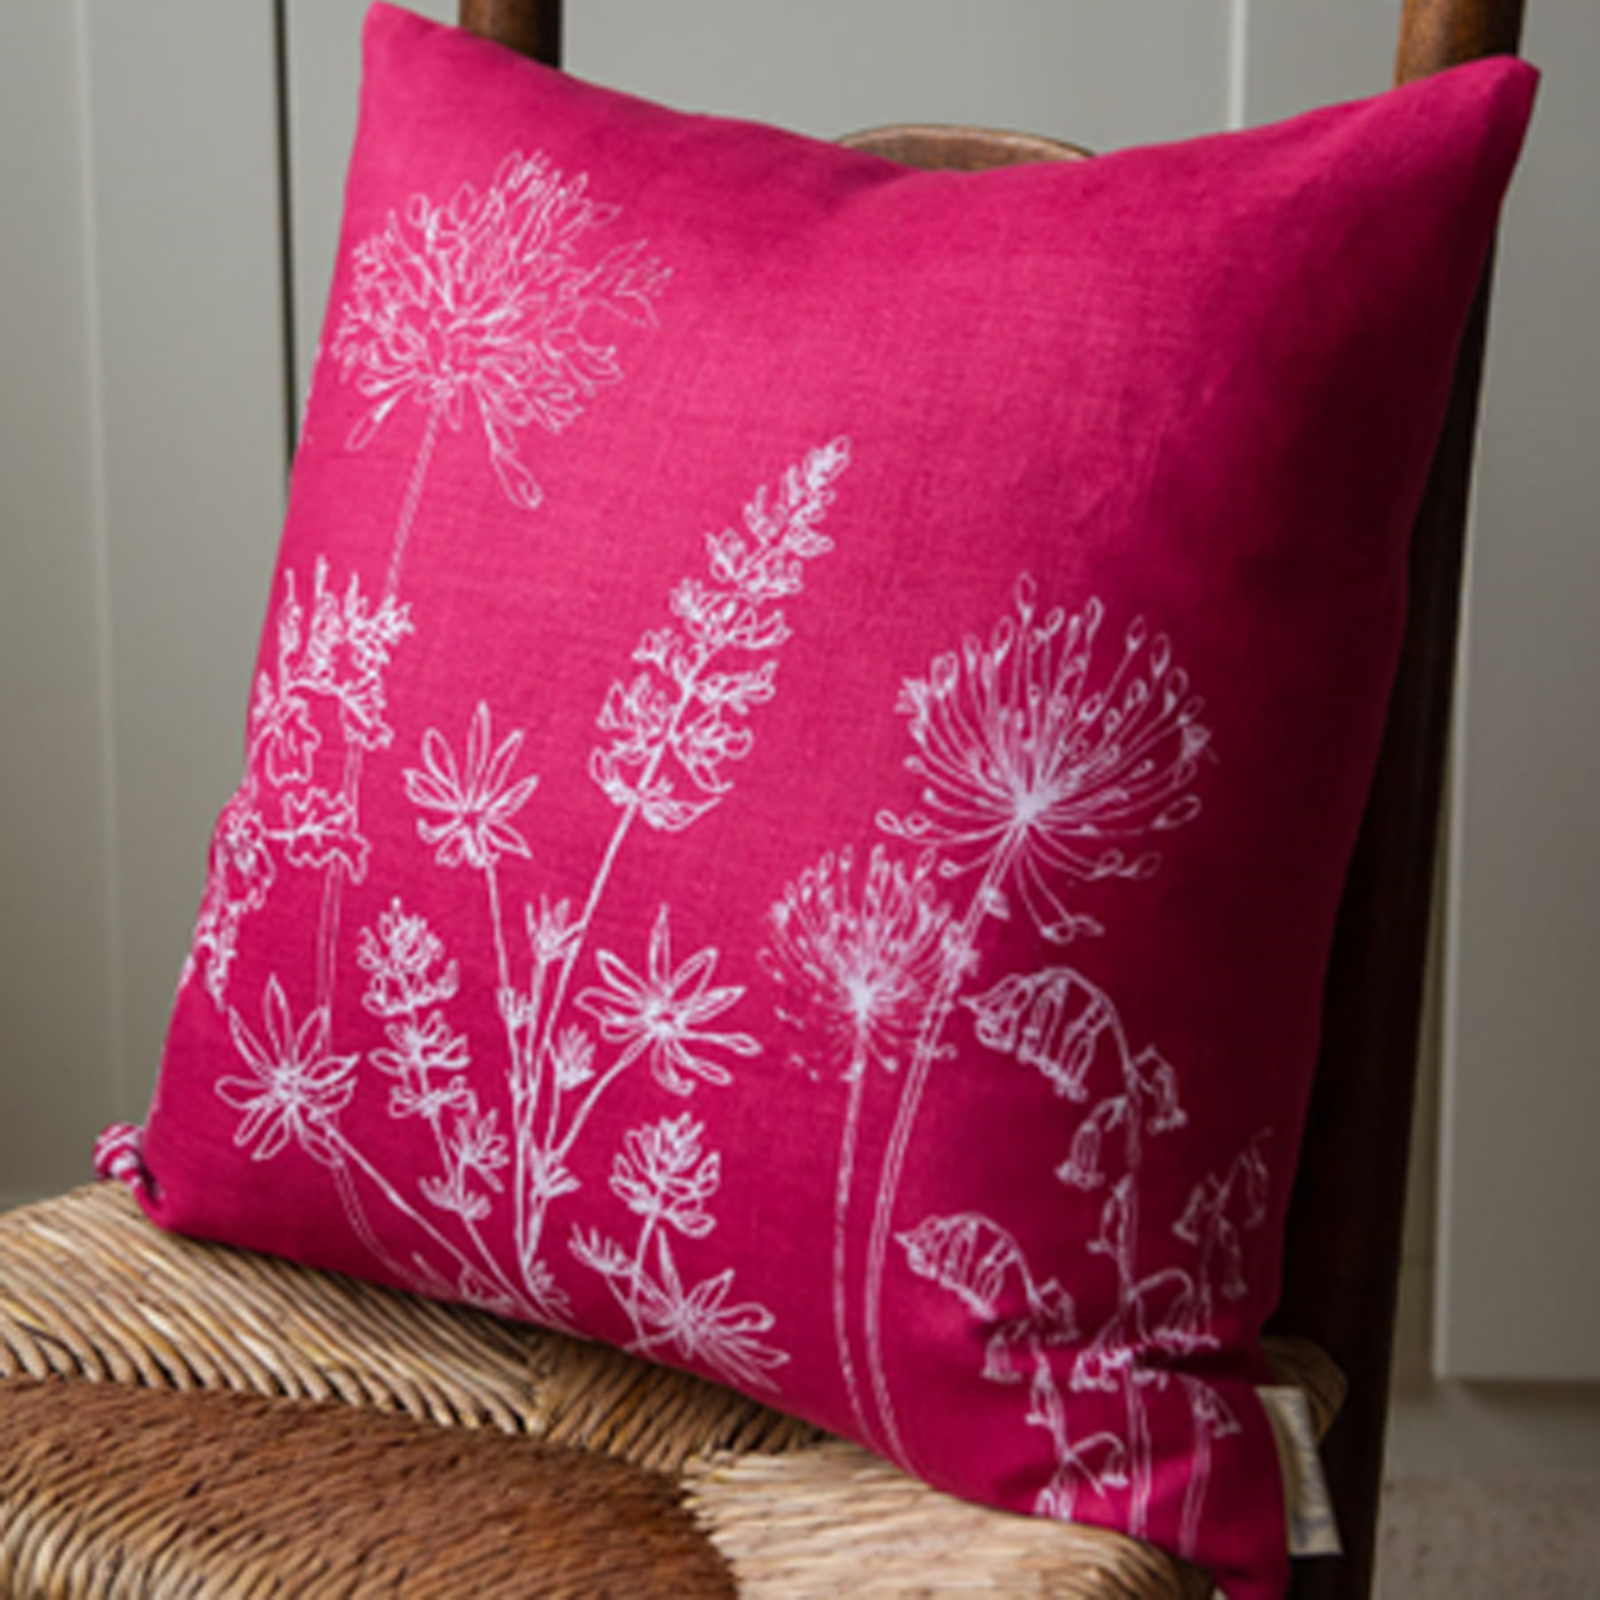 Cushion - Hand Printed Linen in Raspberry Pink - Country Garden Collection by Helen Round